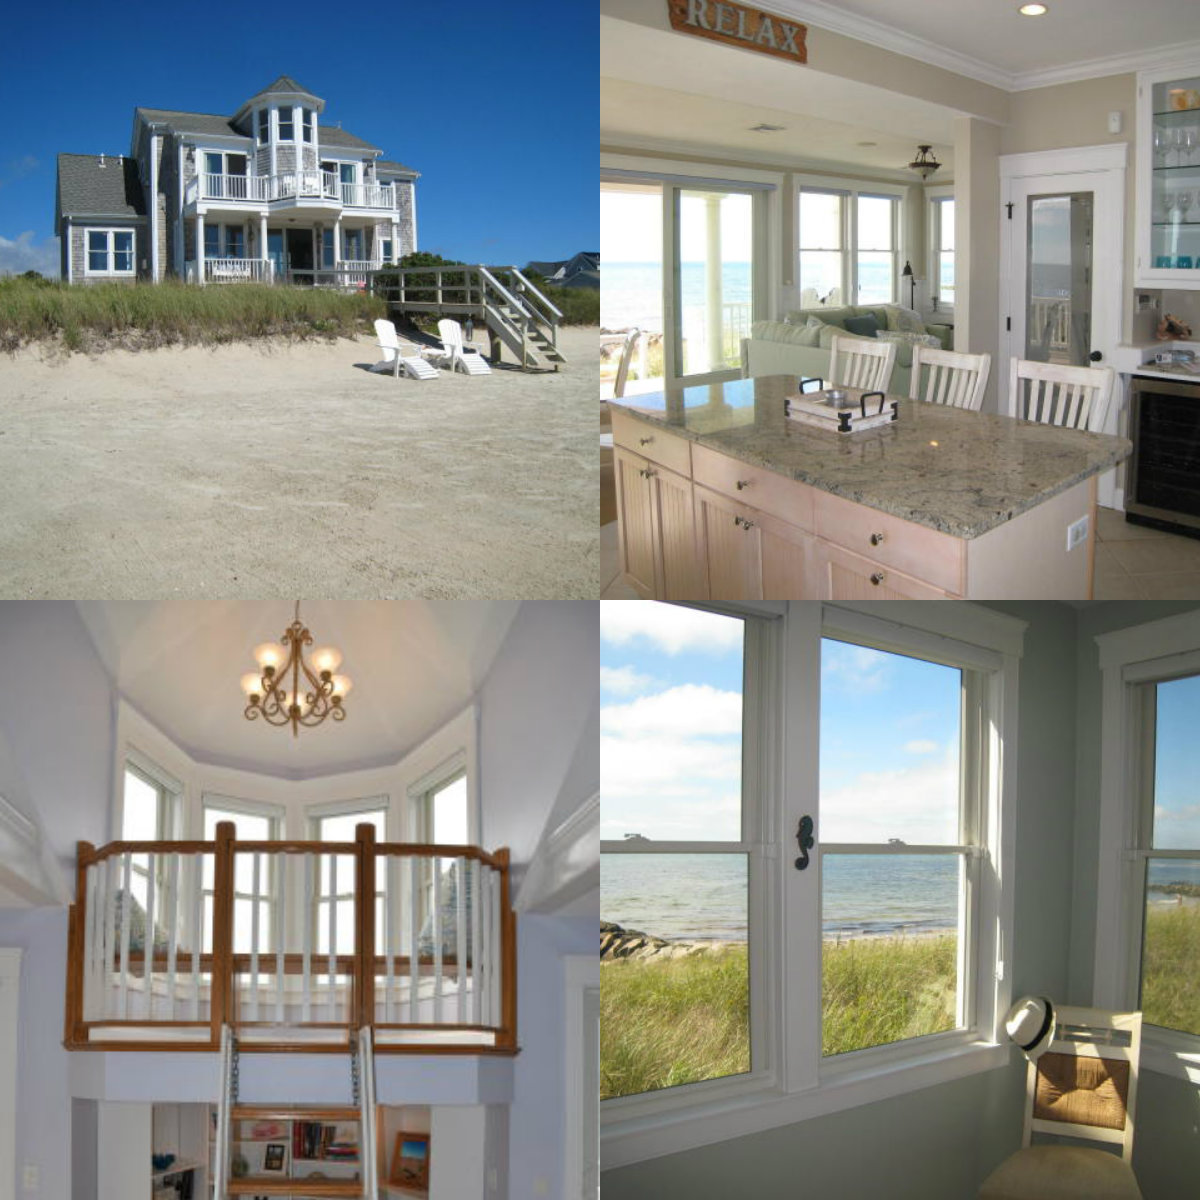 Images of 5 Longell Road in Dennis Port MA on Cape Cod